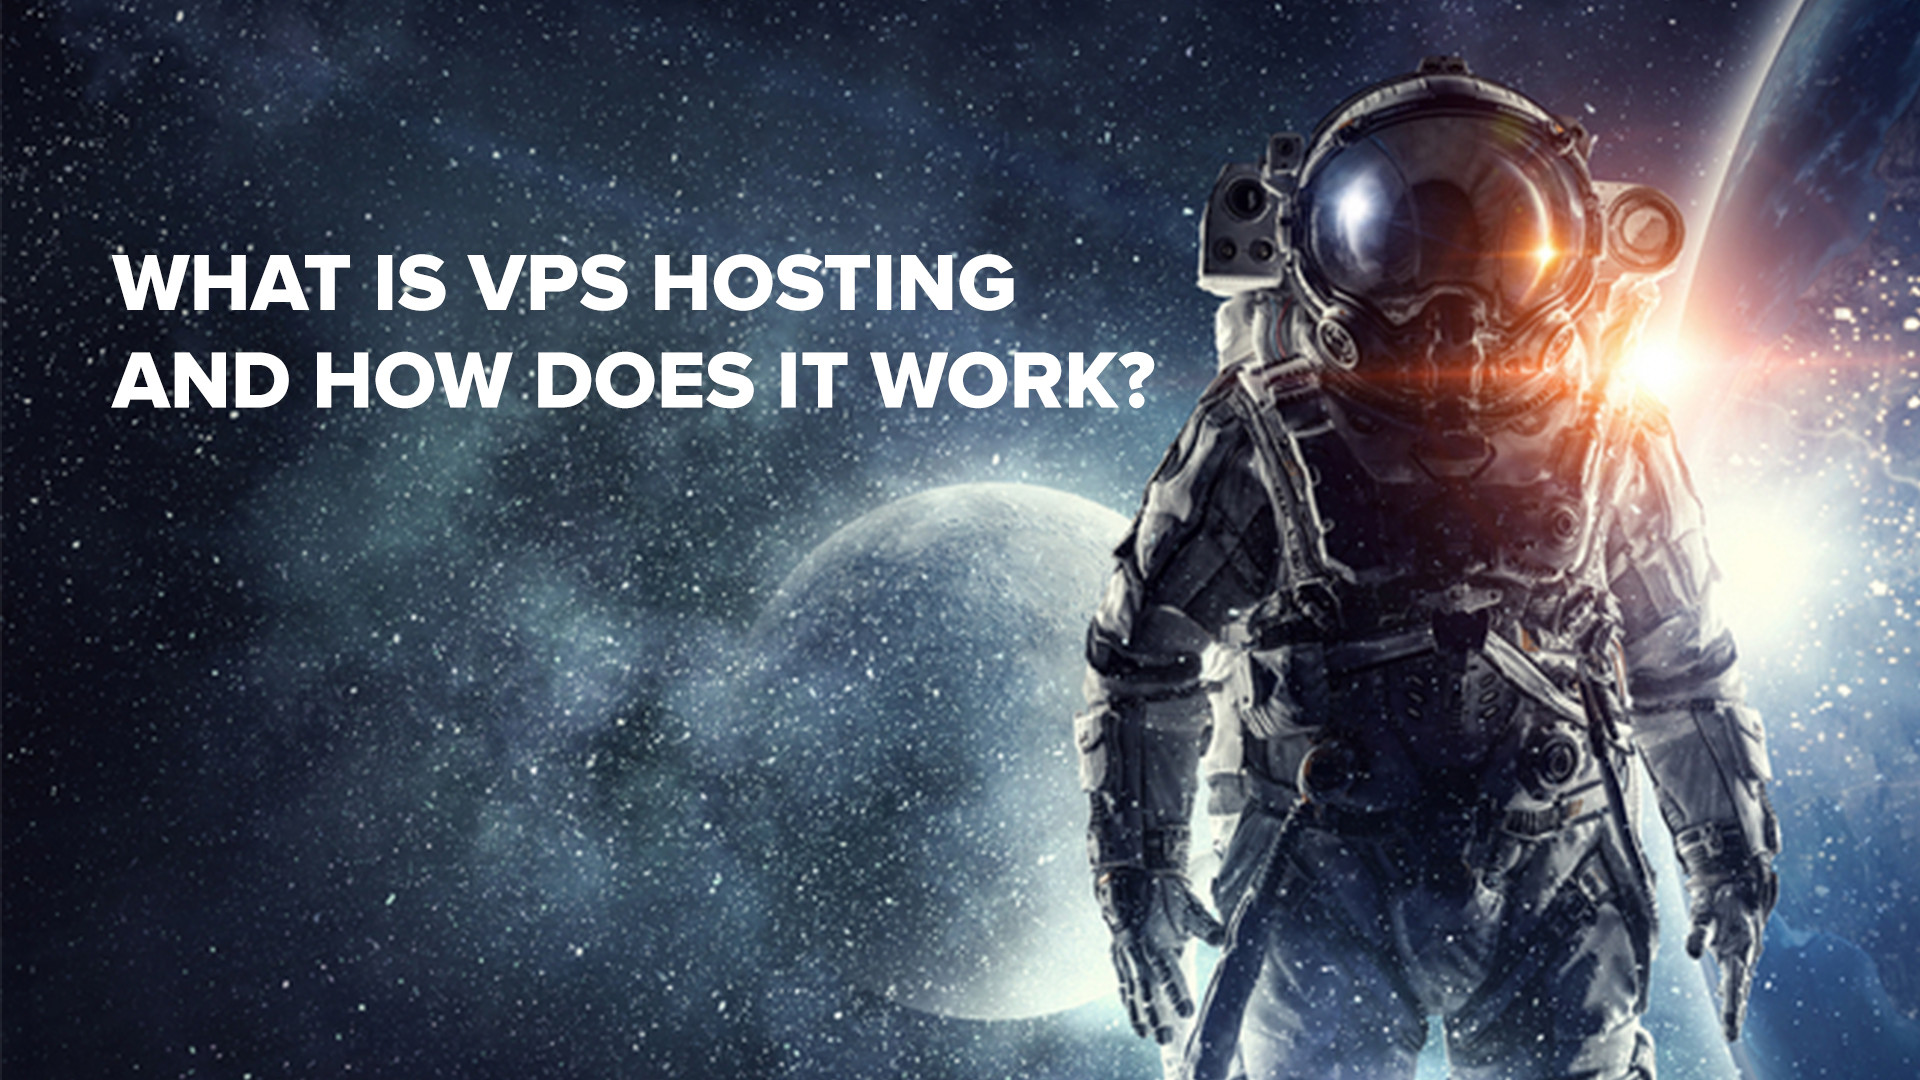 What is VPS hosting and how does it work